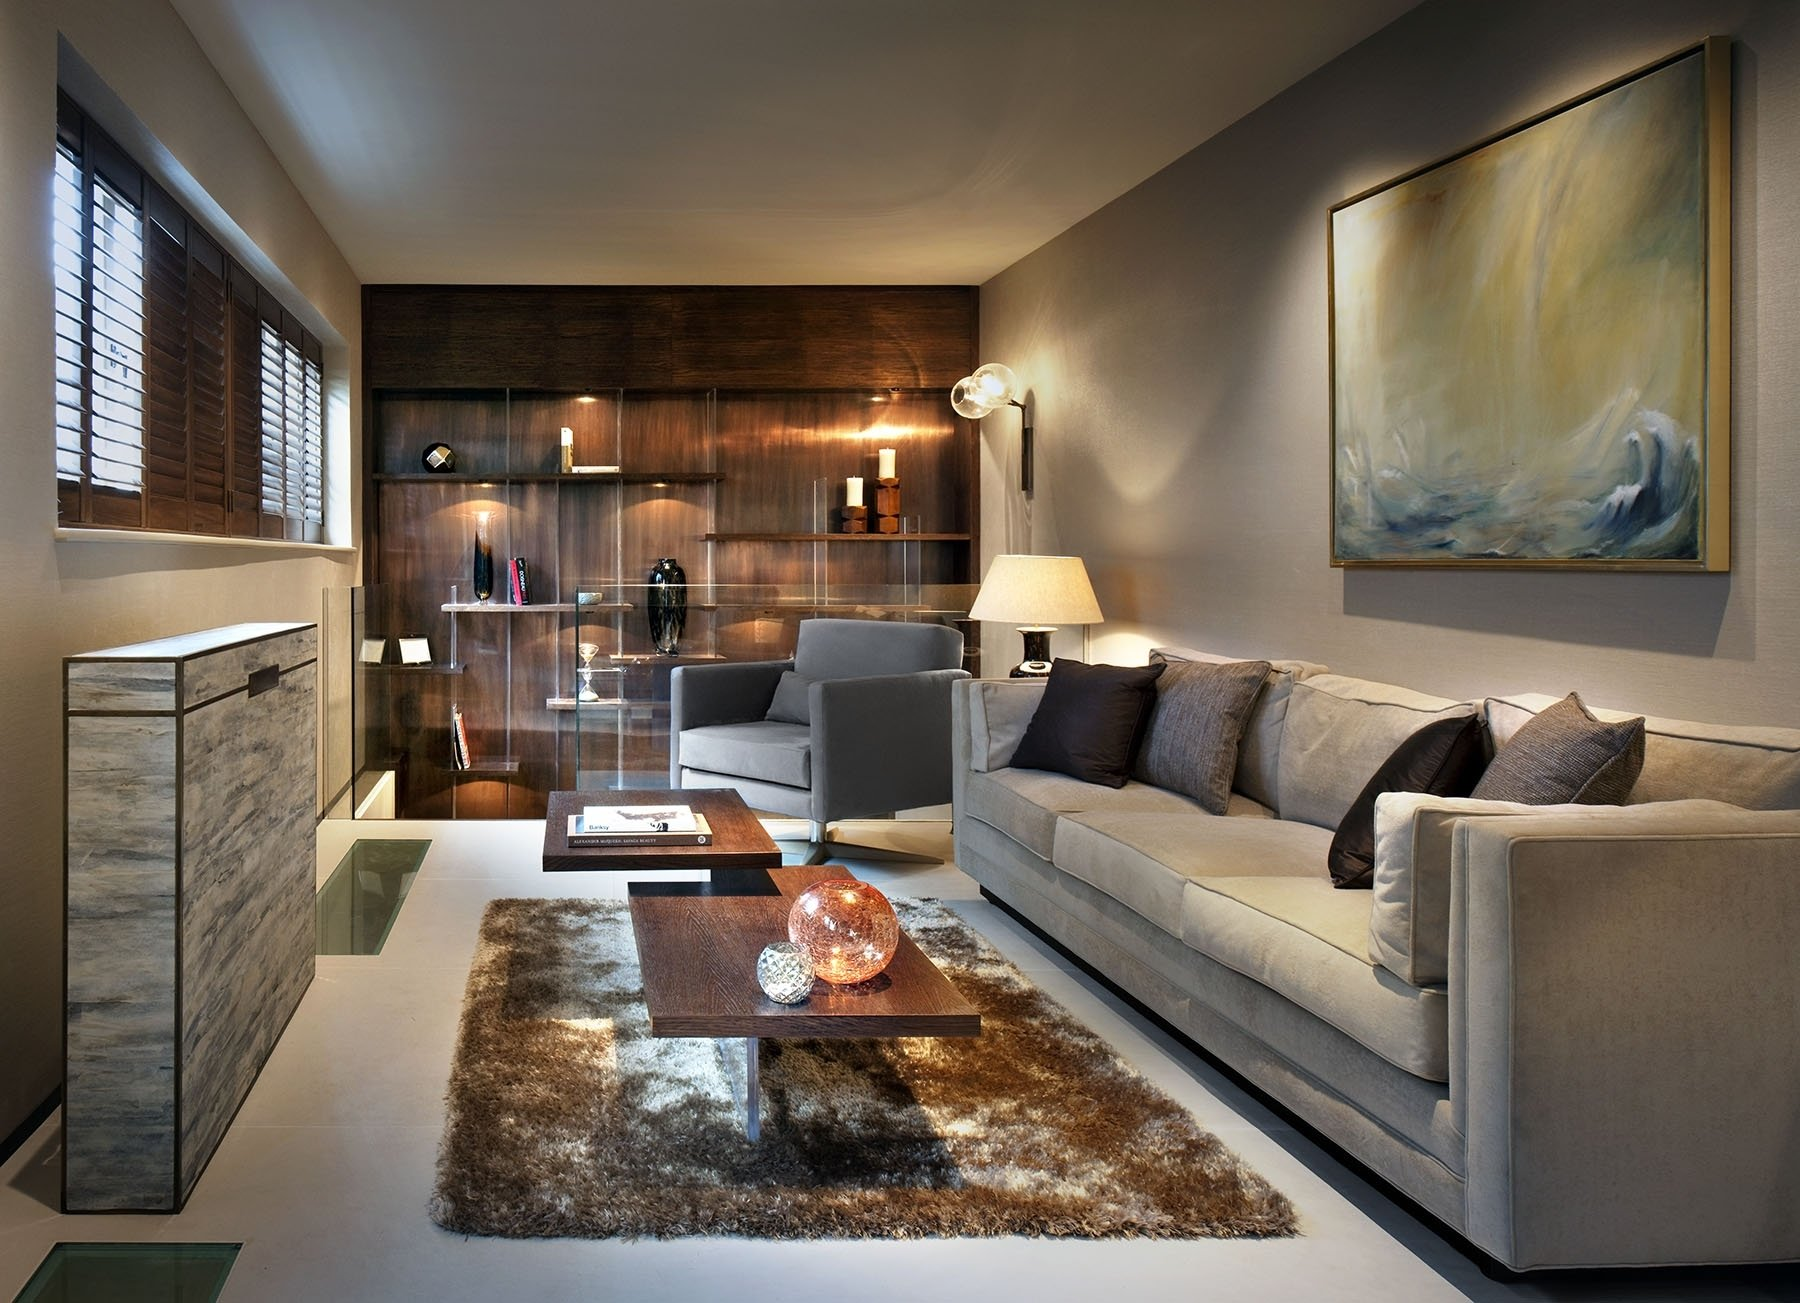 10 Most Recommended Long Living Room Design Ideas living room living room splendid ideas sofa coffe table luxury 2021